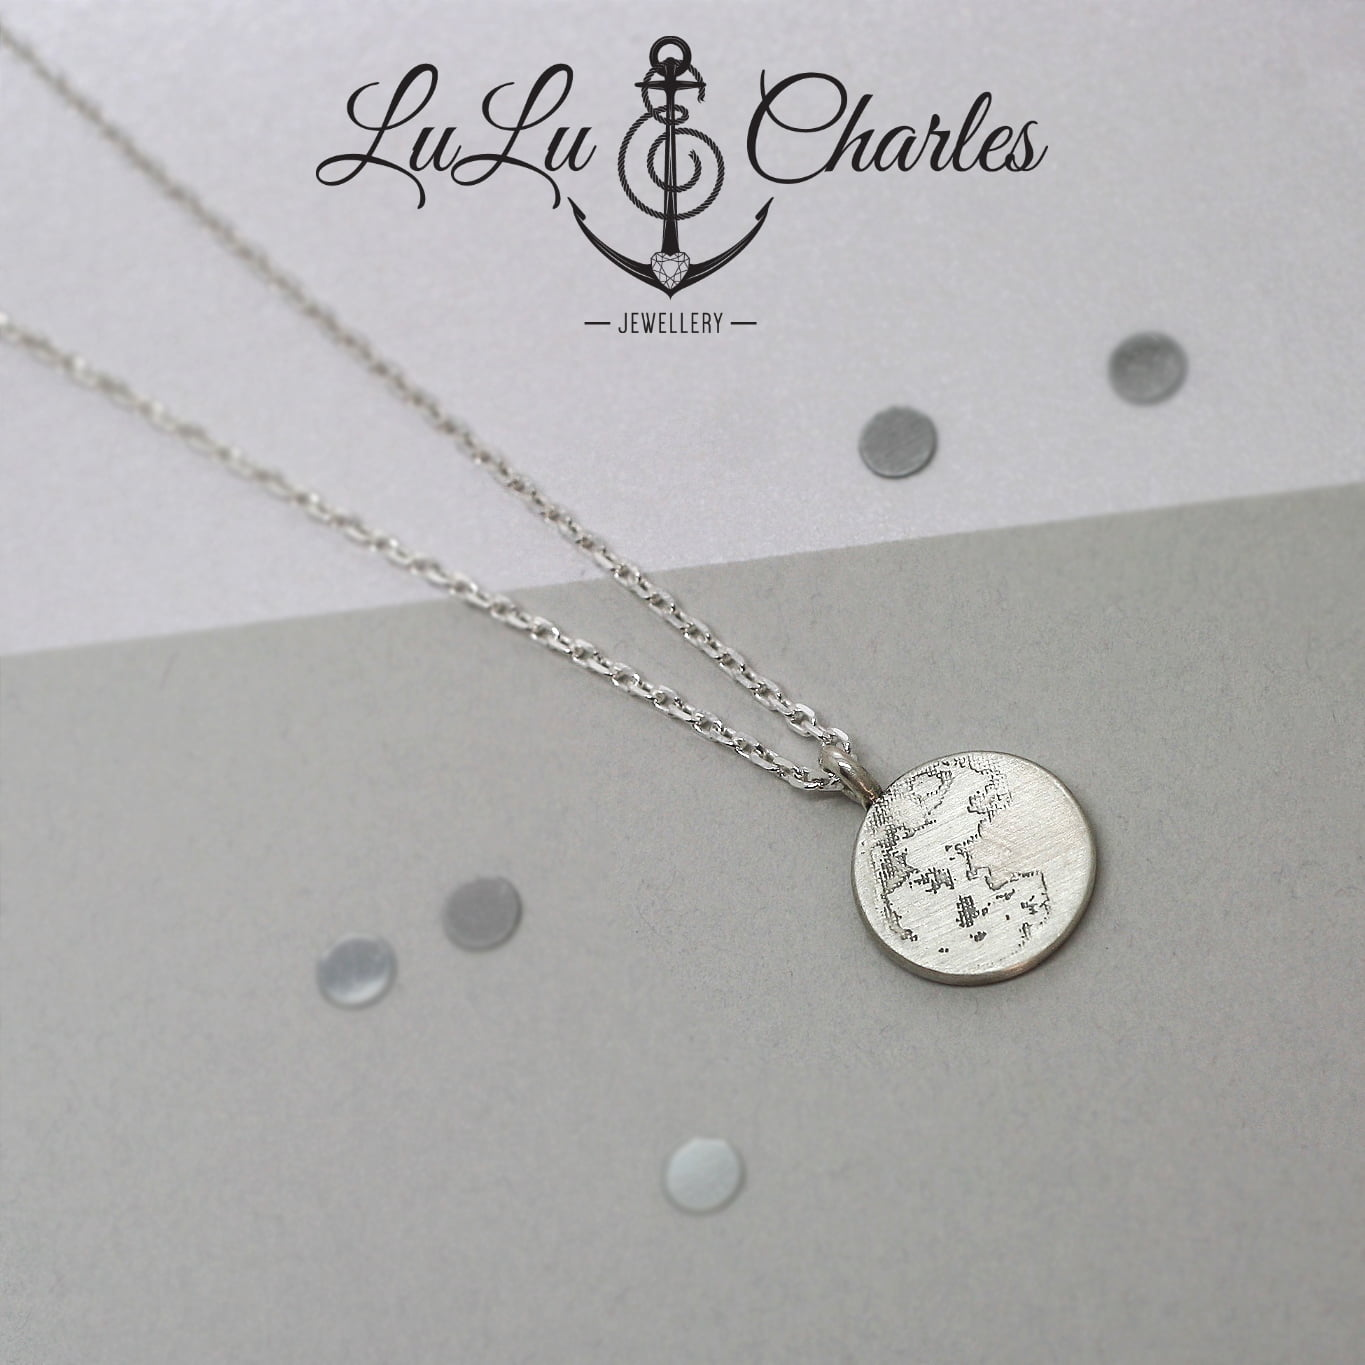 Handmade Sterling Silver, Full Moon Wish Charm Necklace